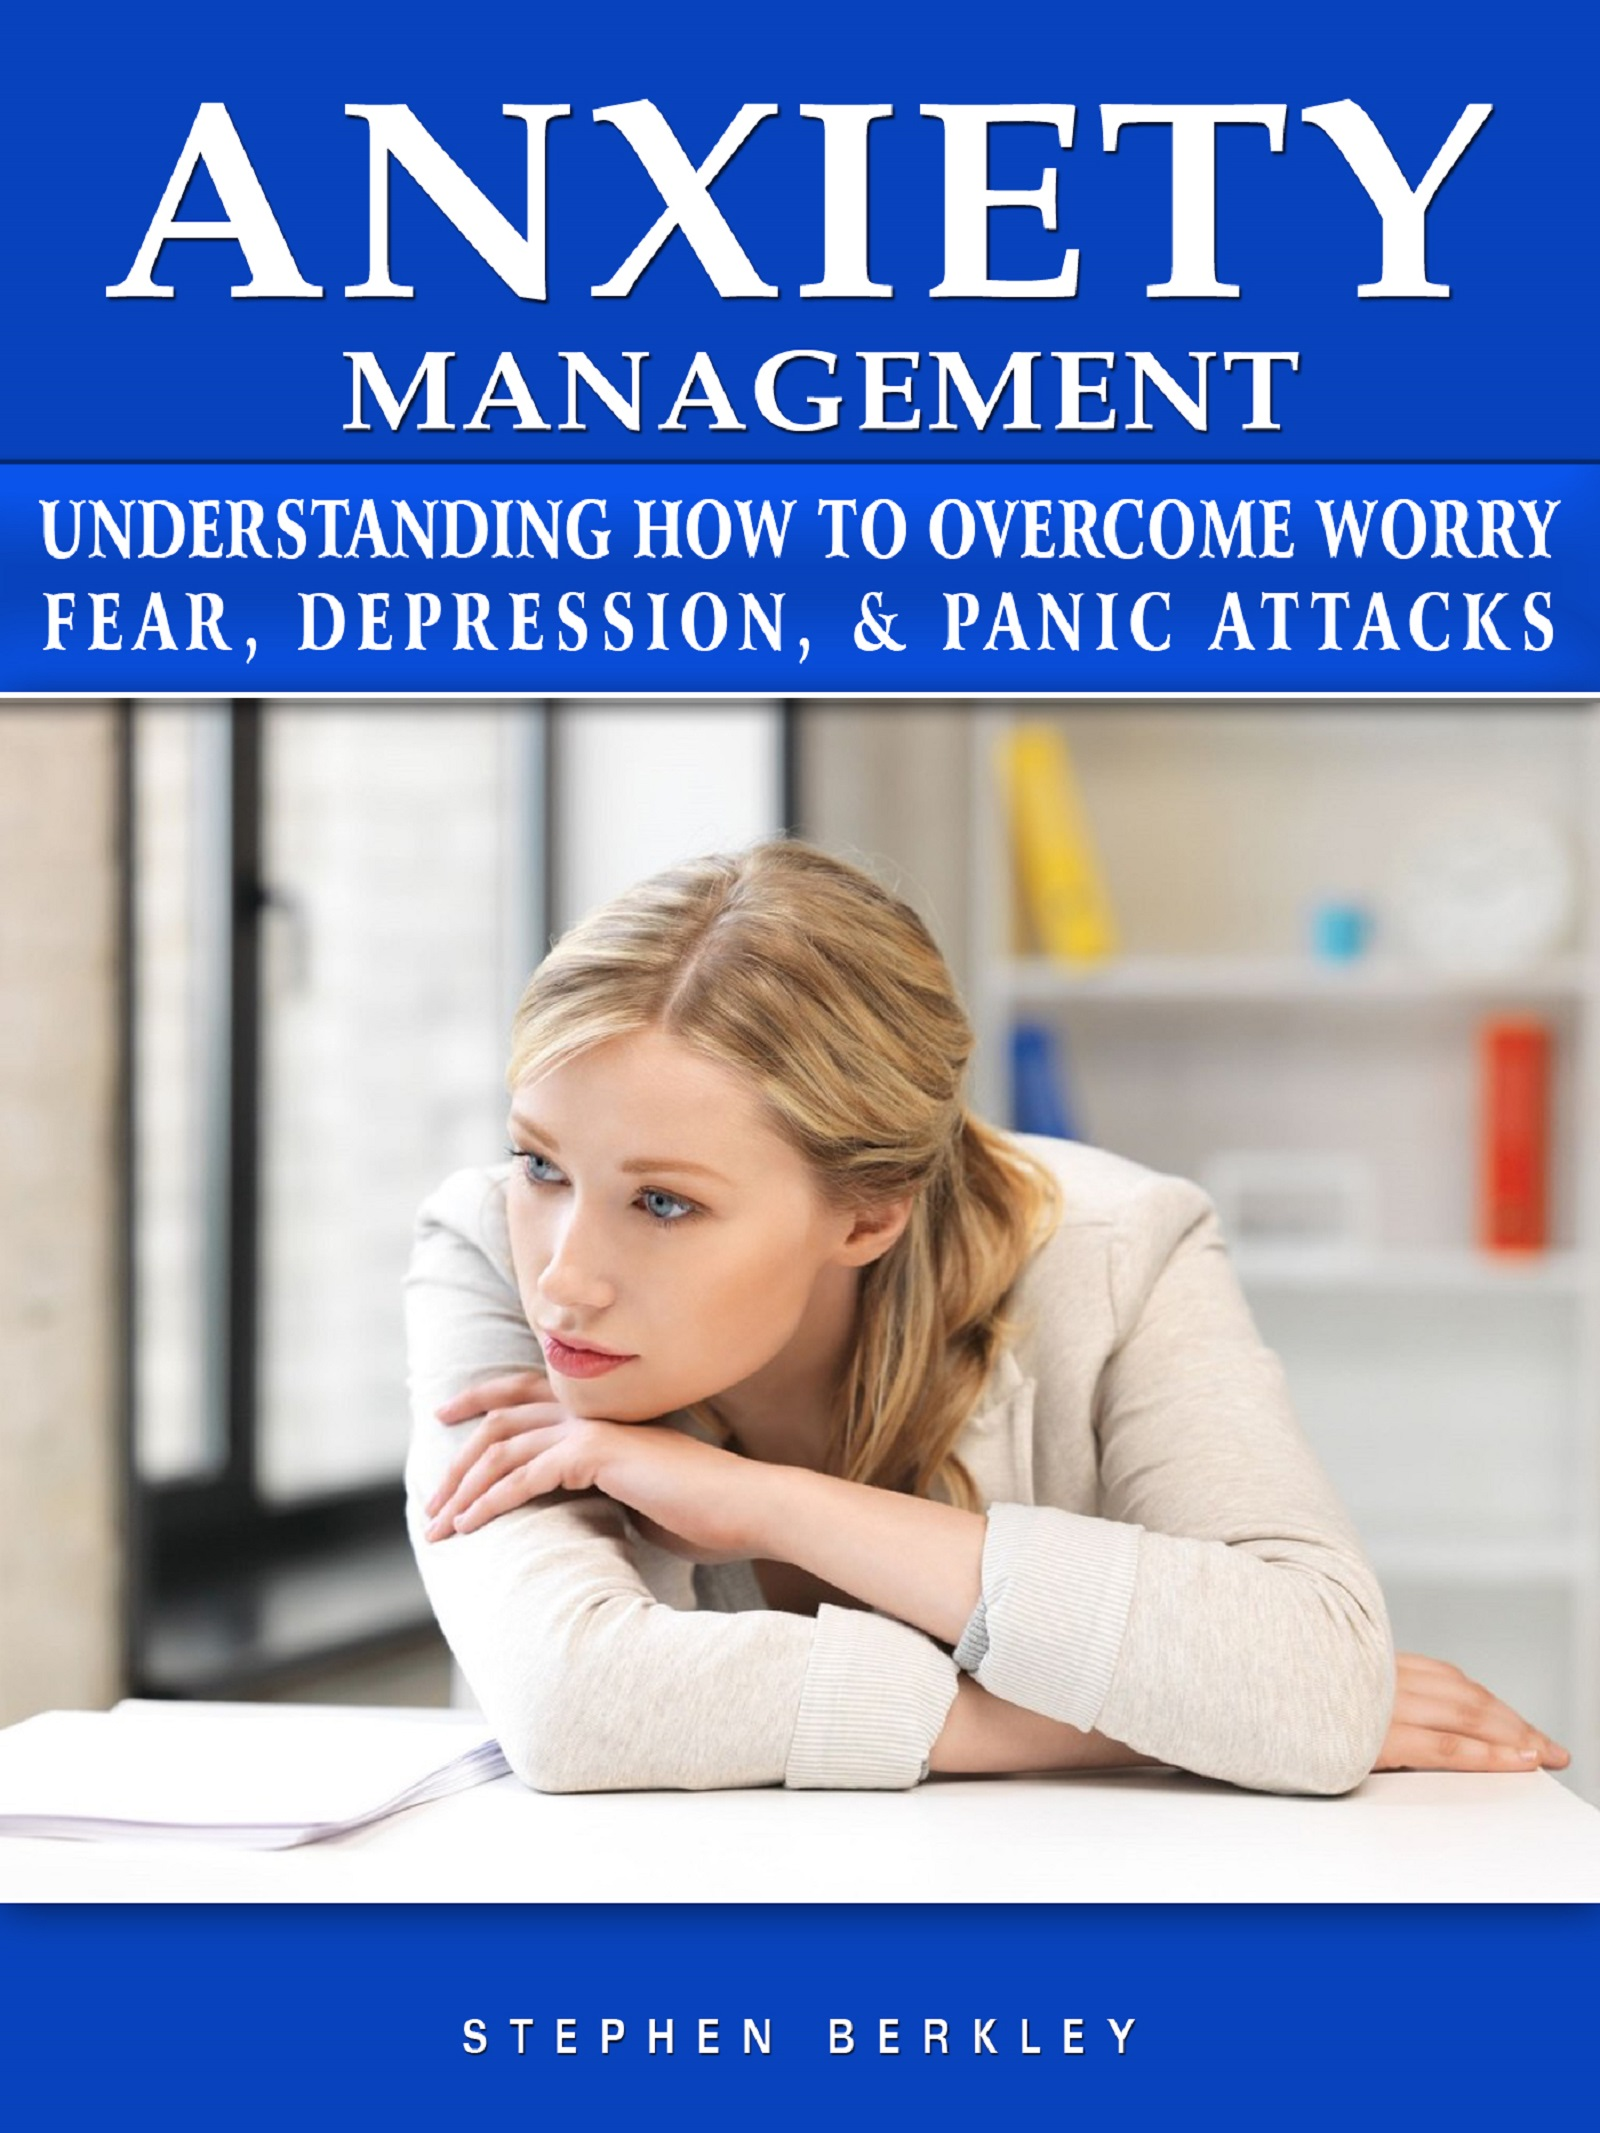 Anxiety management understanding how to overcome worry fear, depression, & panic attacks